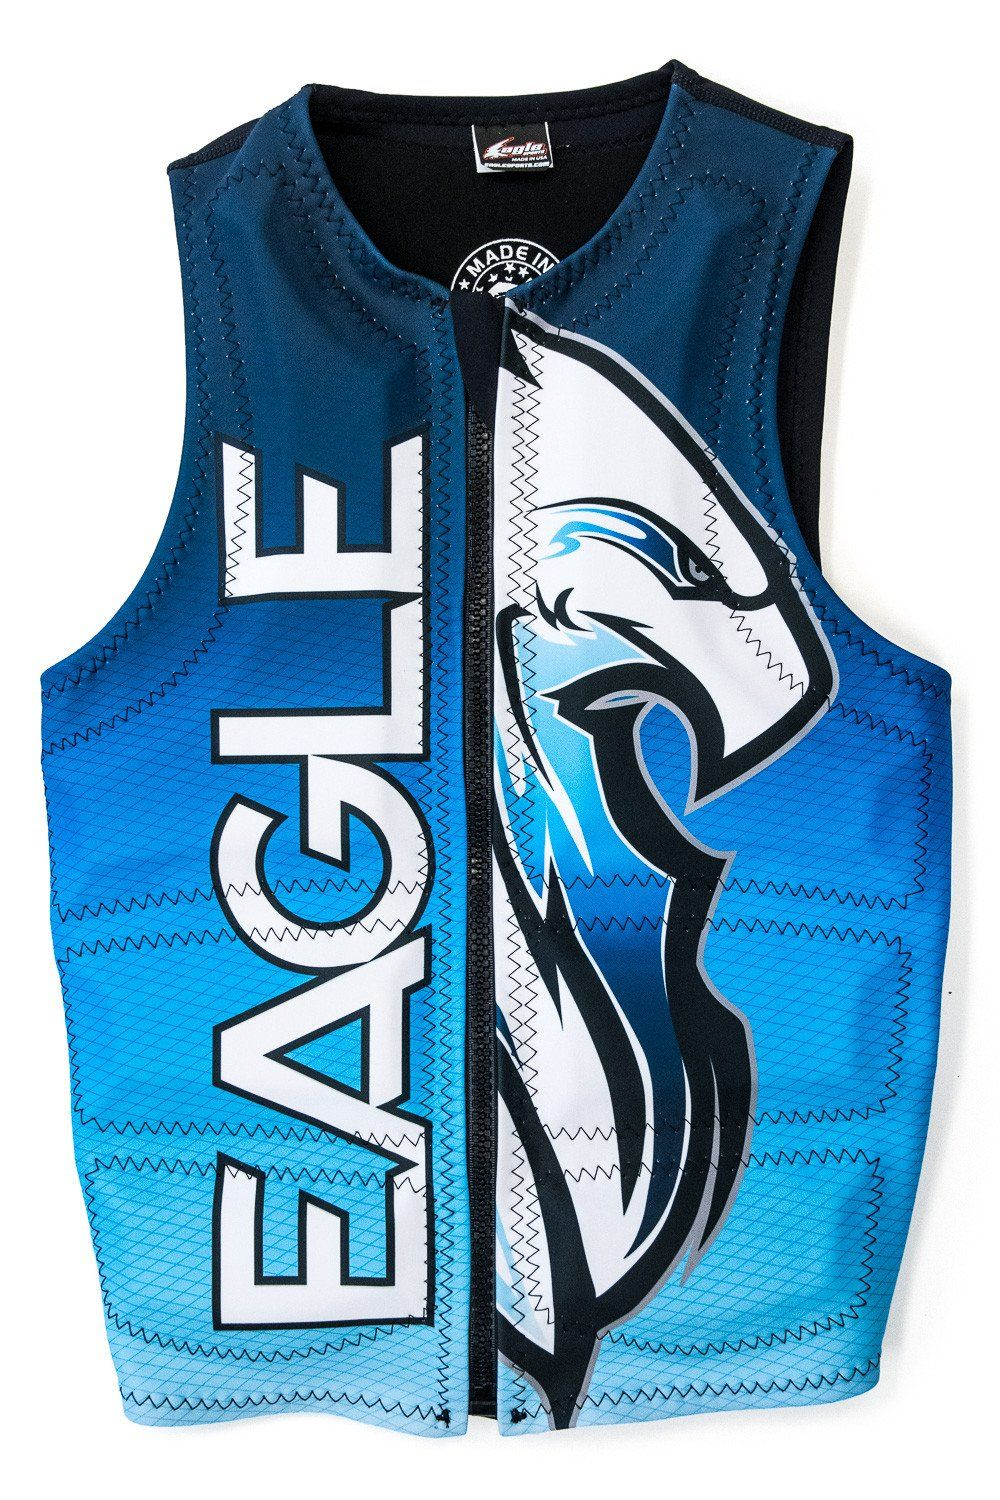 Masterline Blue Eagle Mens Bird Of Prey Water Ski Vest Eagle Mens Wetsuit Water Ski Accessories Water Skiing Tow Boat Towing